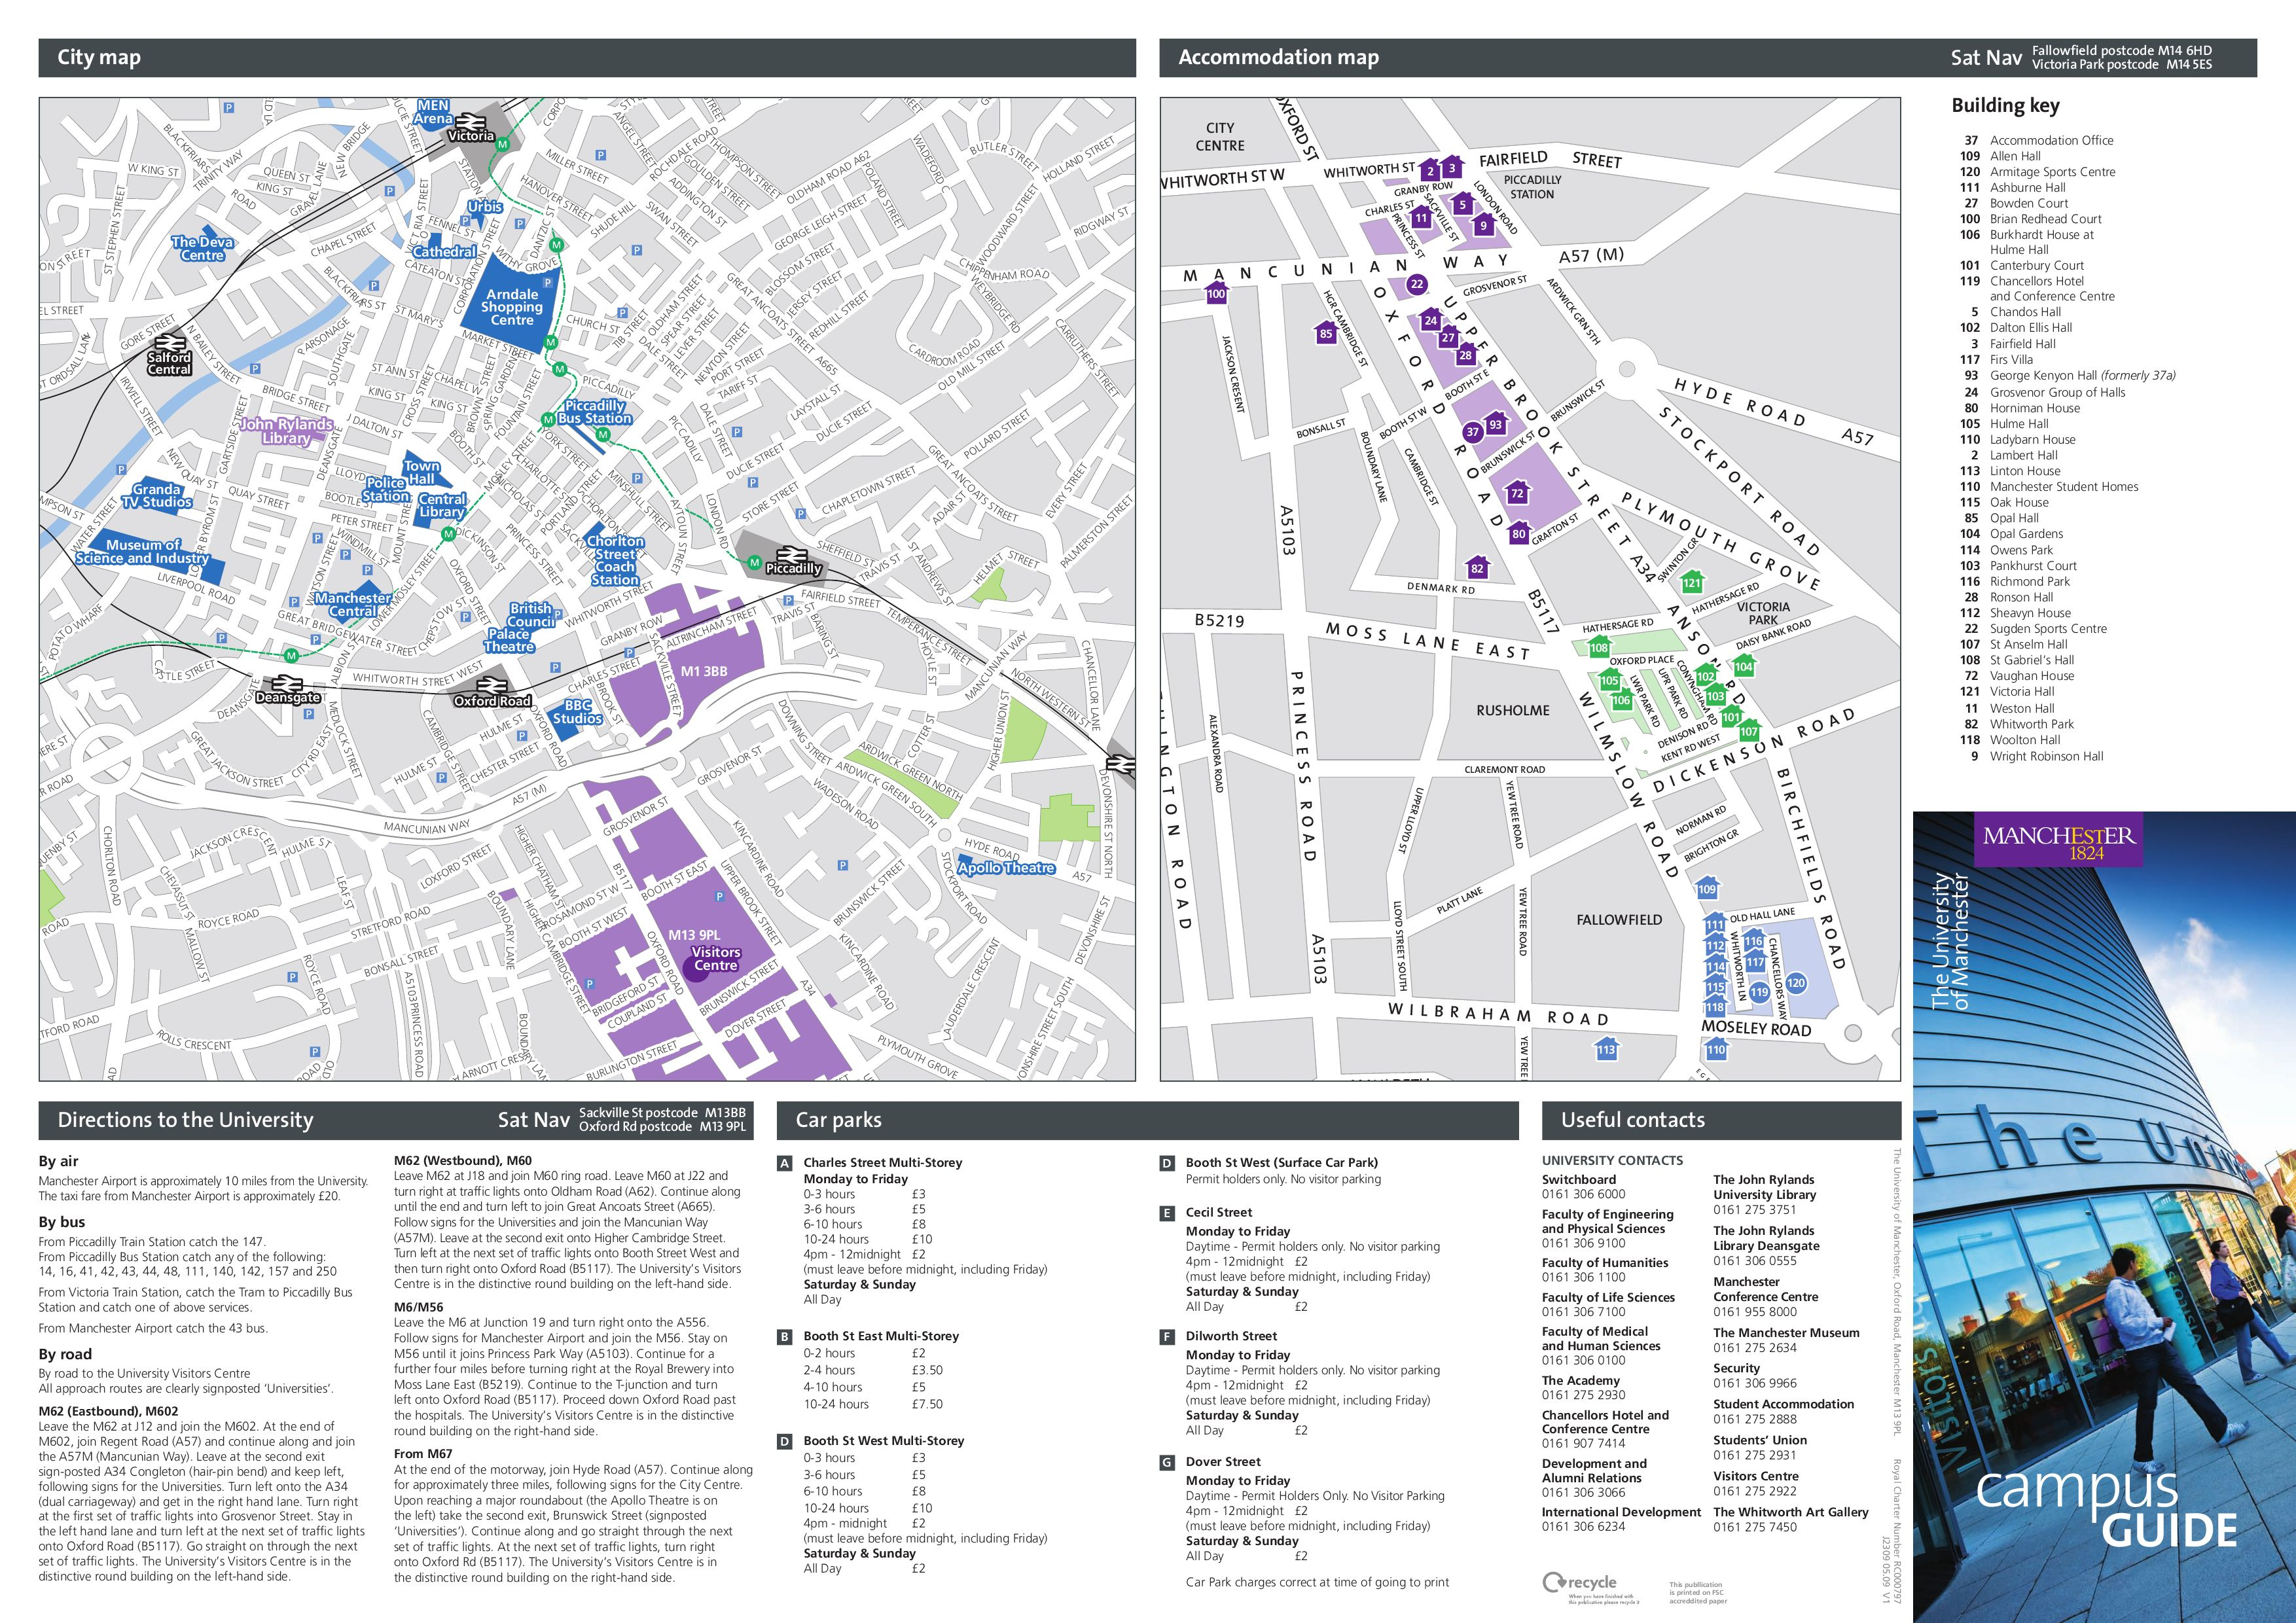 St Anselm Campus Map.Campus Map By Anson Xiong Issuu